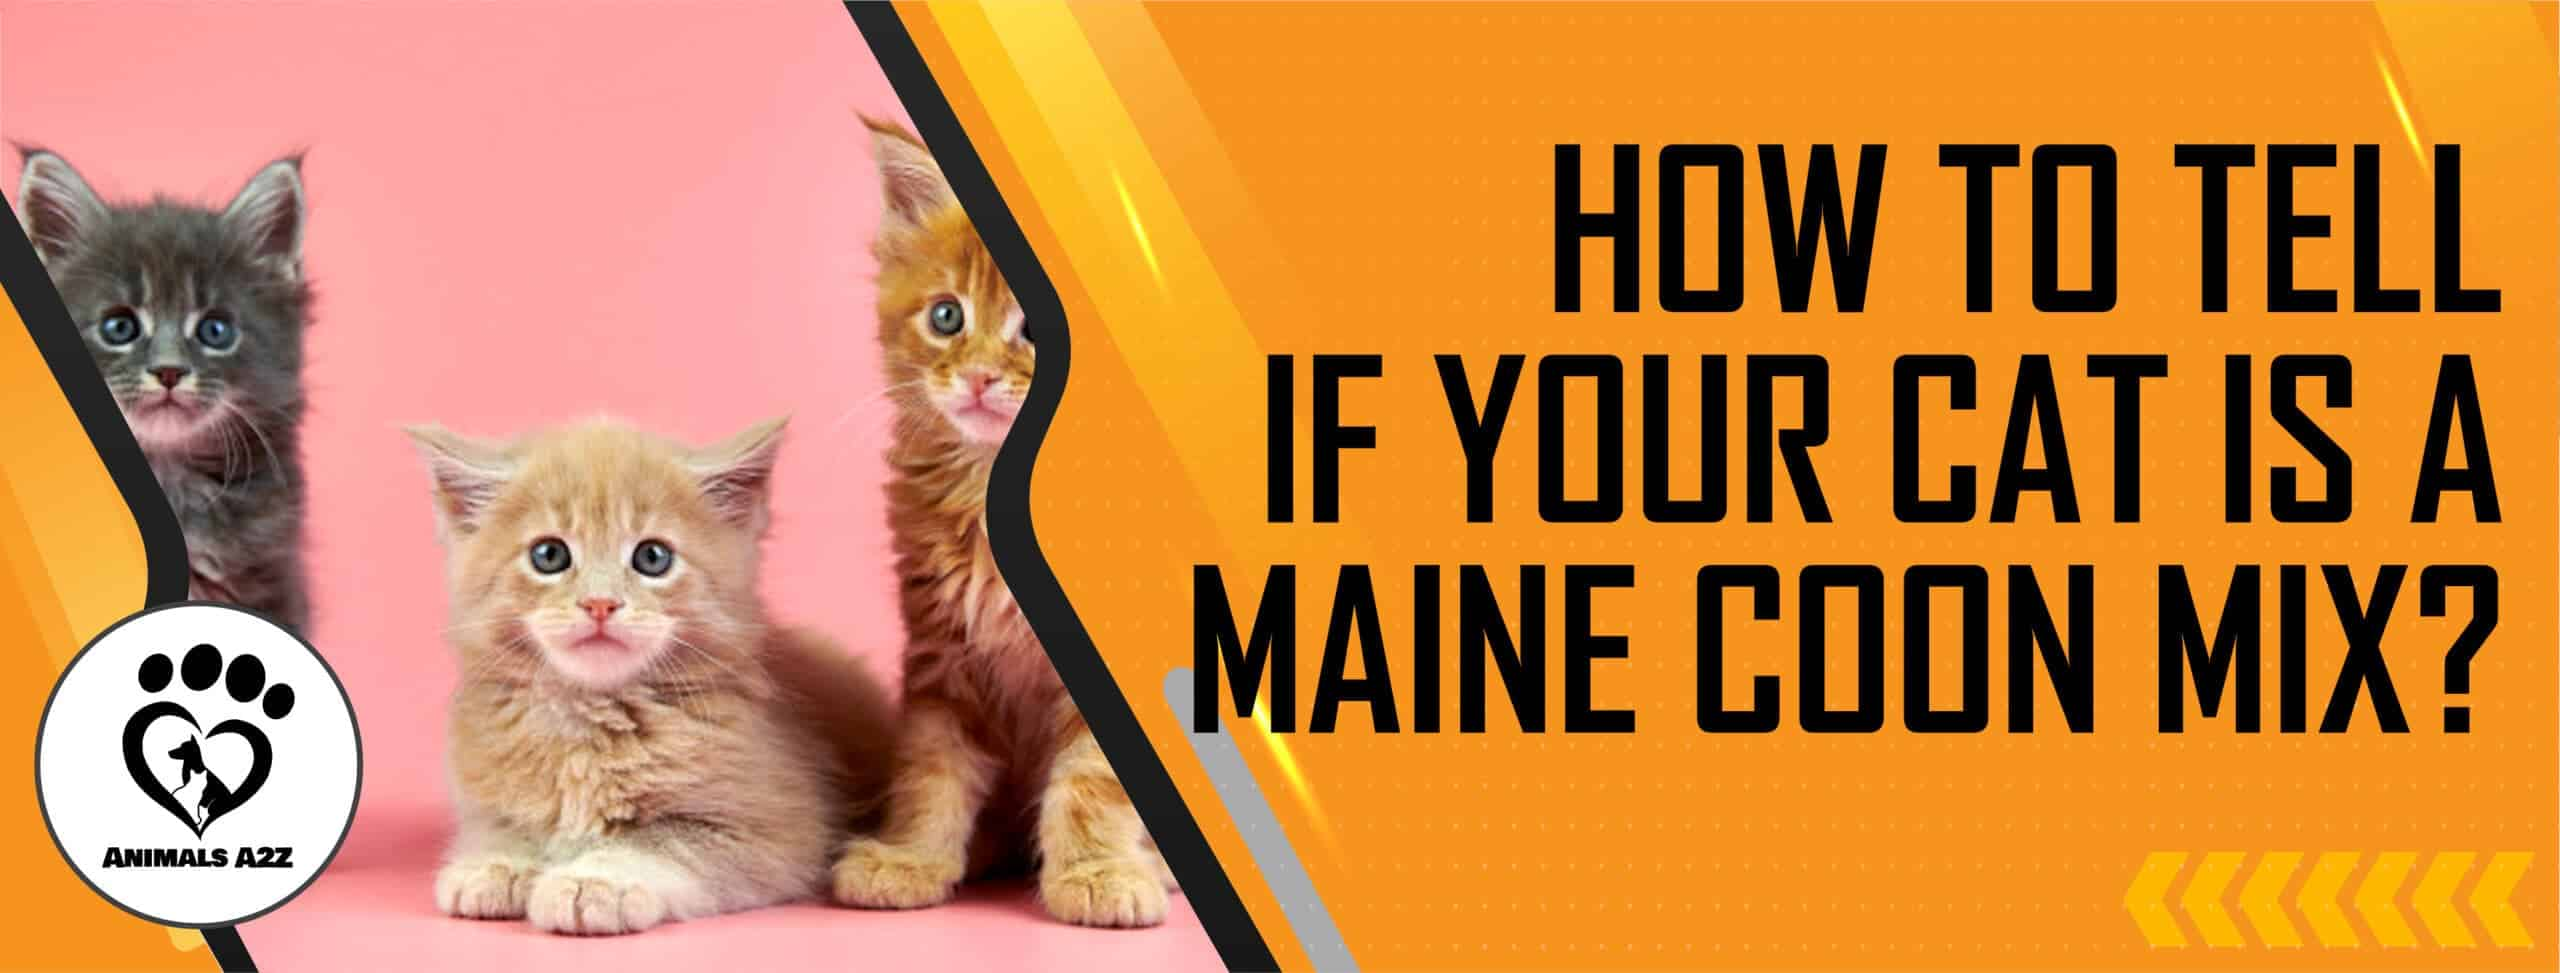 How to tell if your cat is a Maine Coon mix